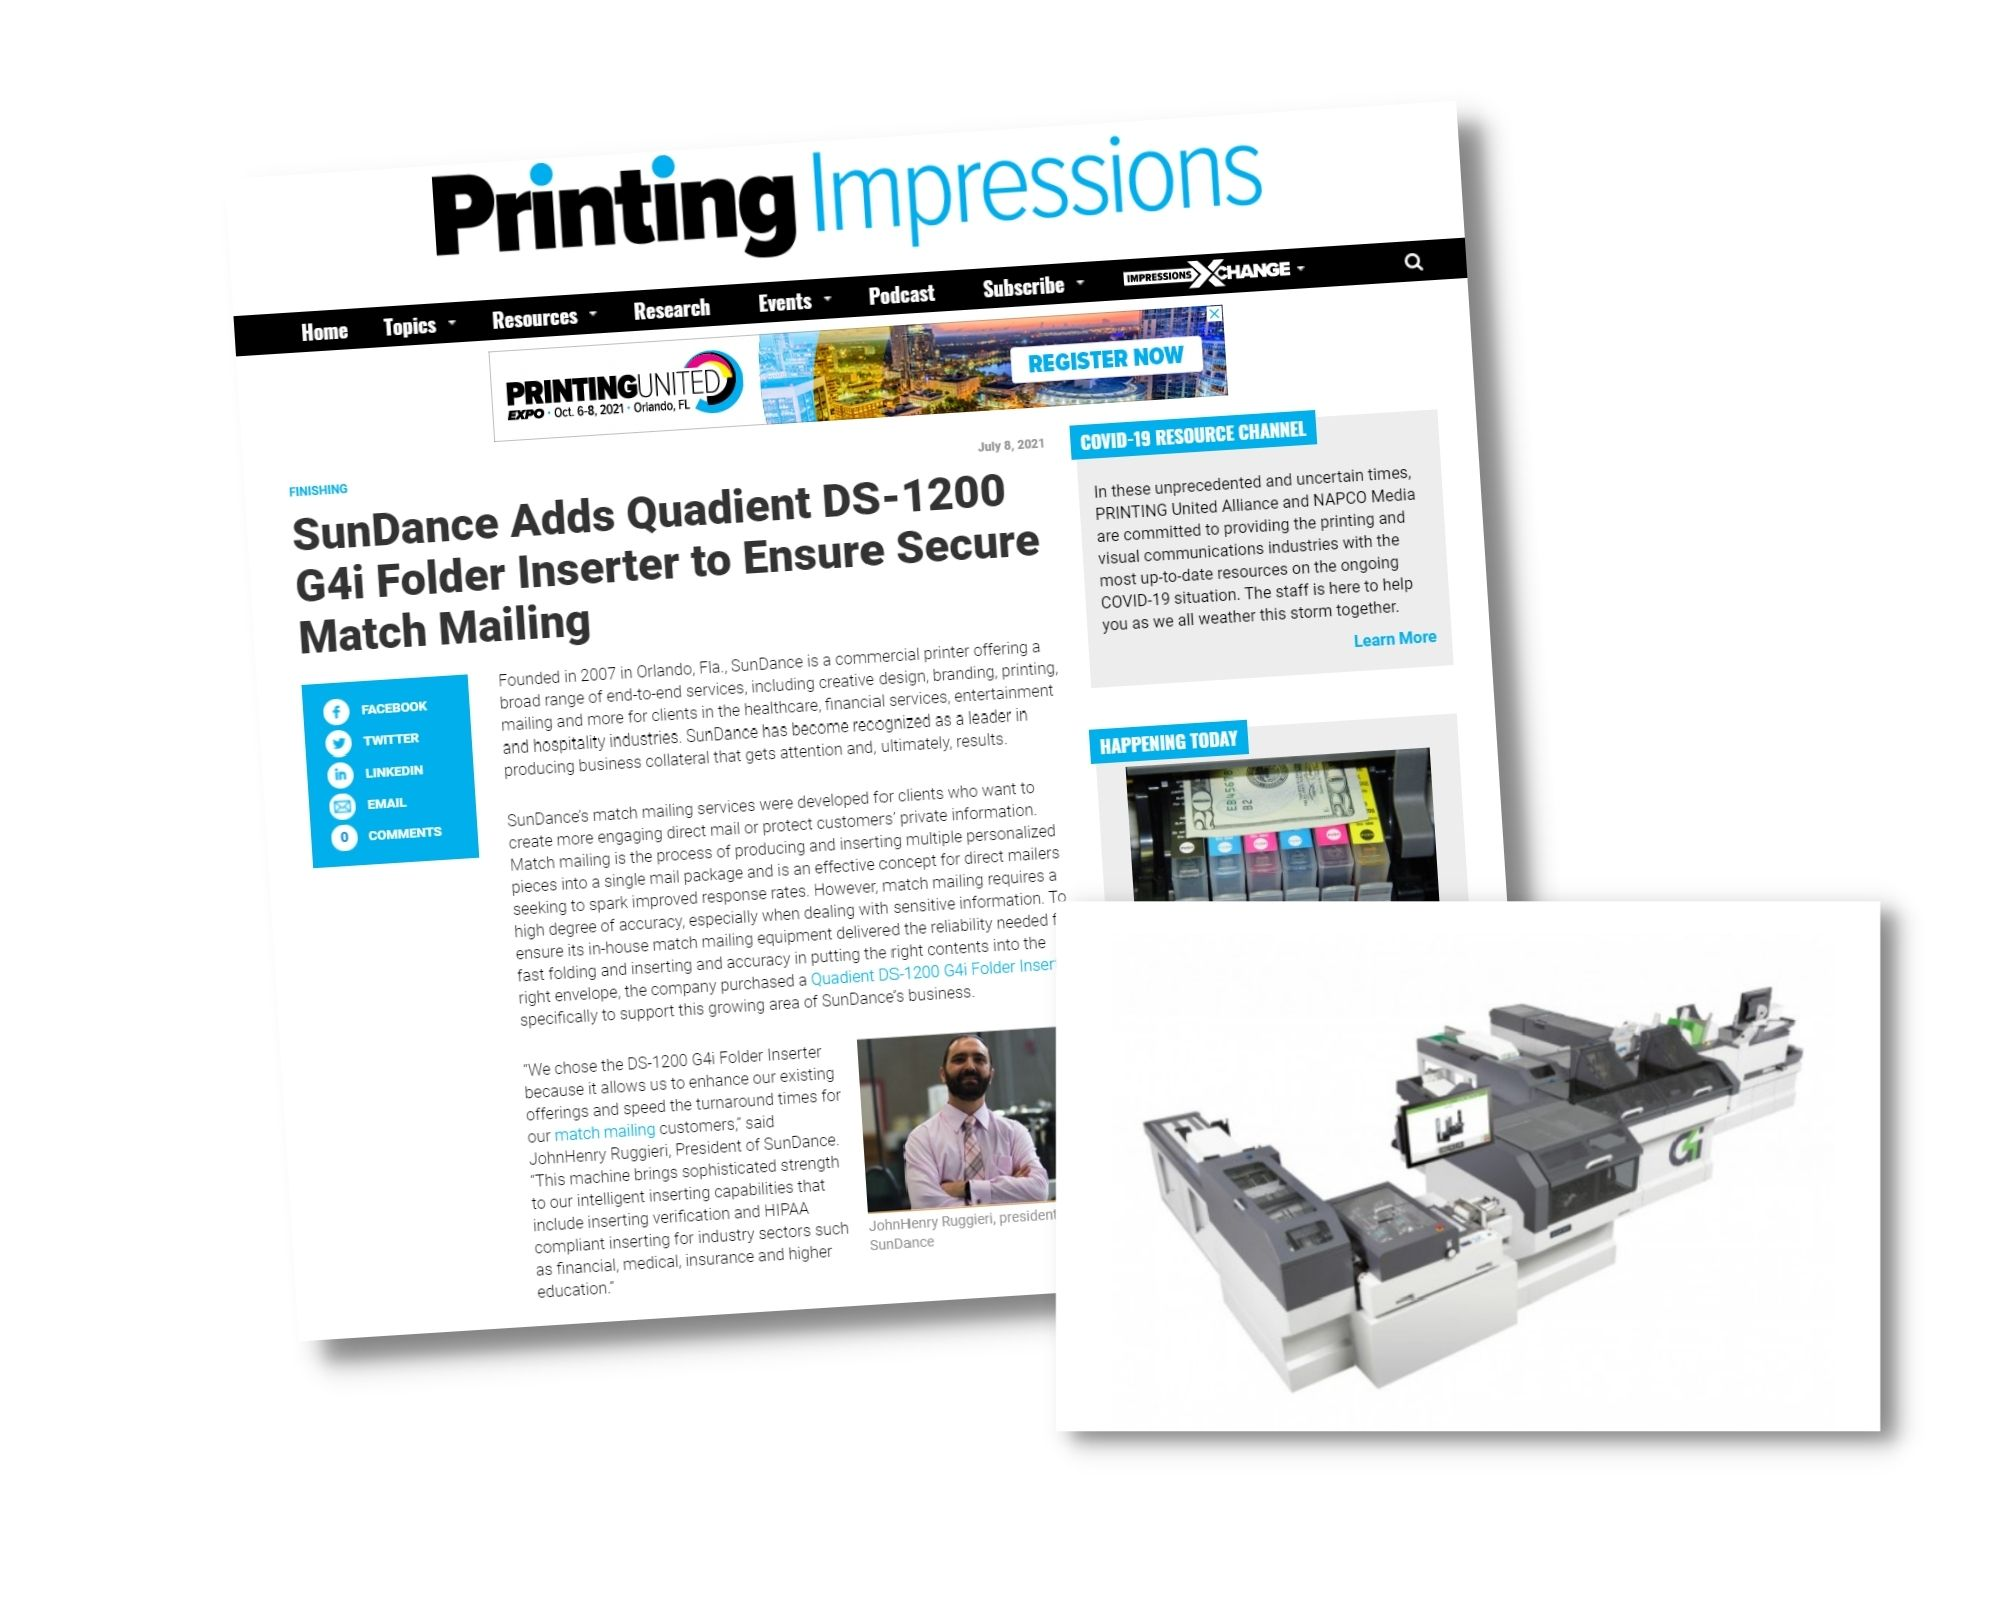 Printing Impressions' Latest Article On Our Quadient DS-1200 Intelligent Inserter Purchase